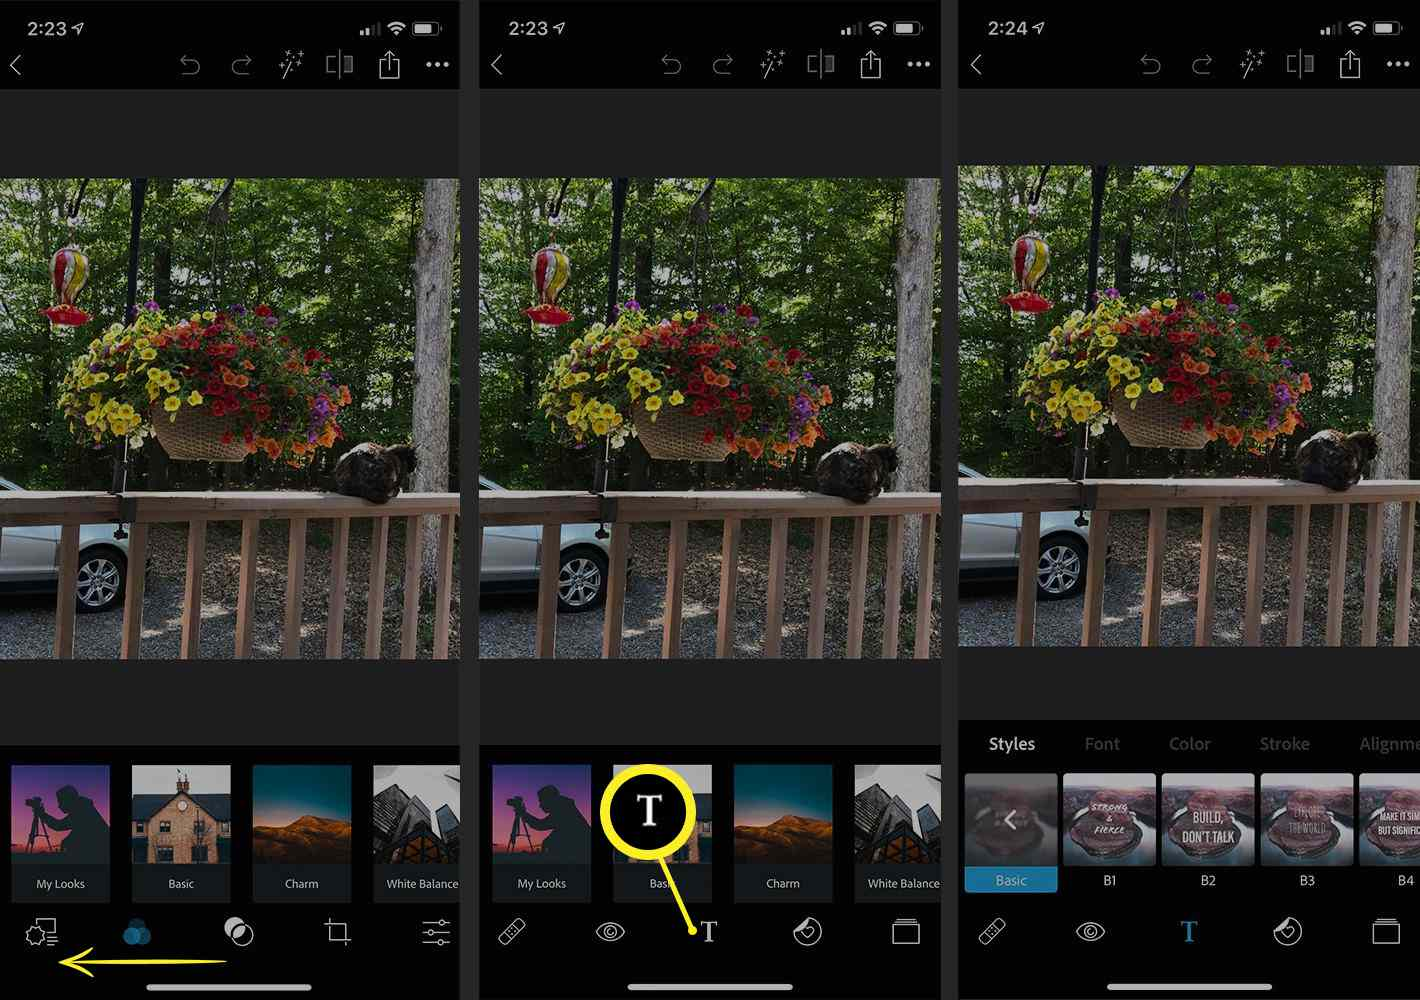 Photoshop Express app on iPhone